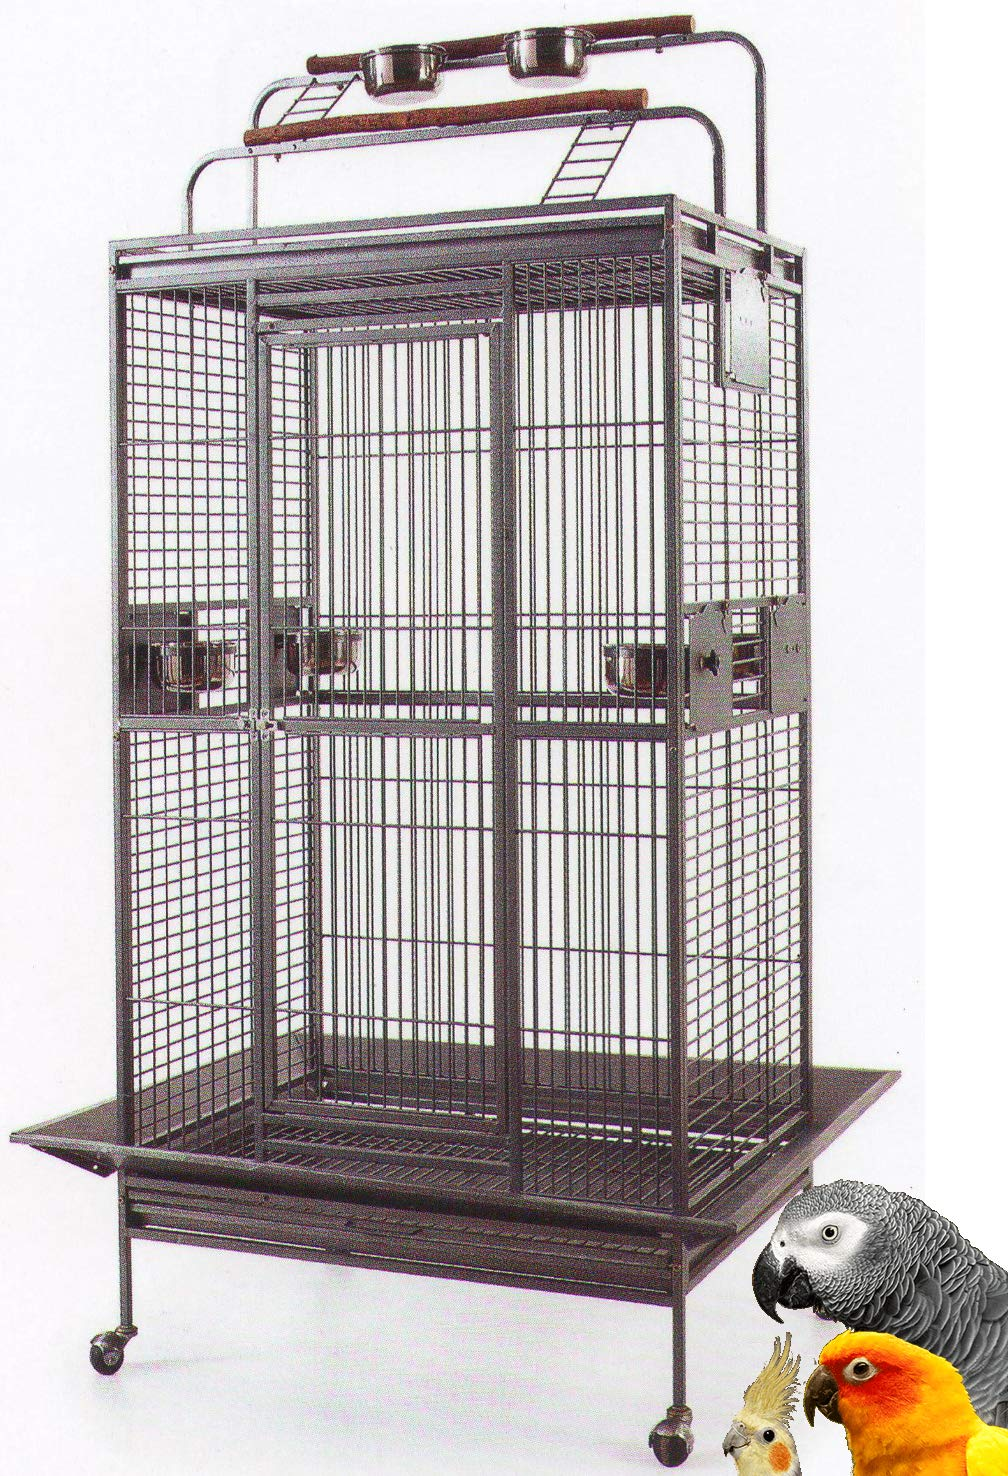 Mcage Large Wrought Iron Bird Parrot Cage Double Ladders Open/Close Play Top, Include Seed Guard and Play Top (Black Vein) by Mcage